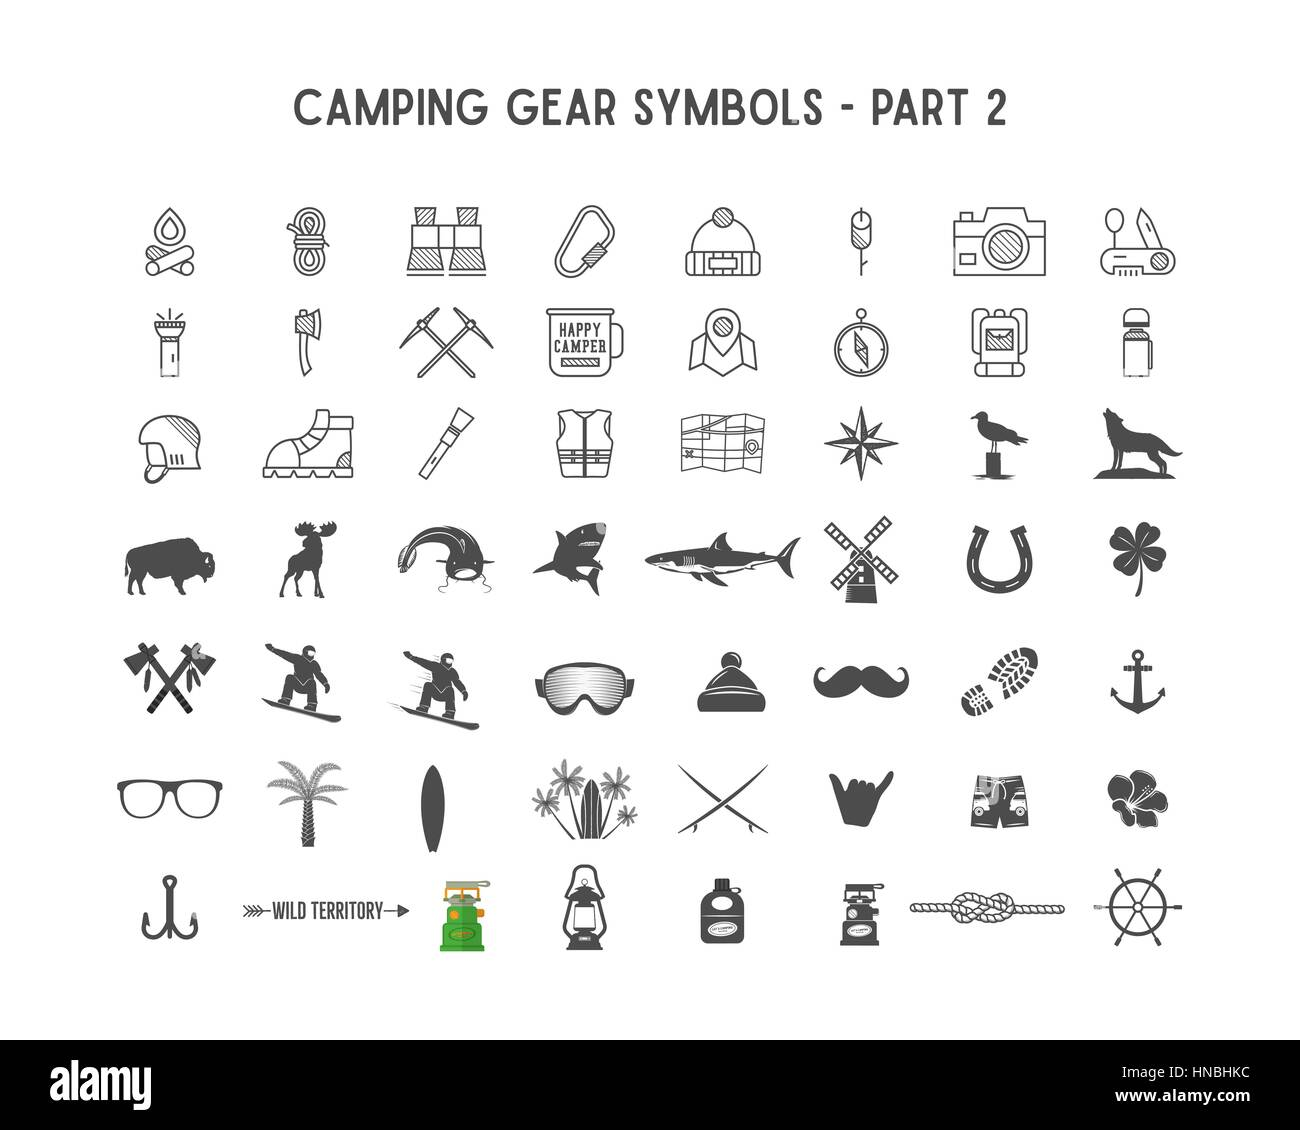 Set of Vector silhouette icons and shapes with different outdoor gear, camping symbols for creating adventure logotypes, - Stock Vector